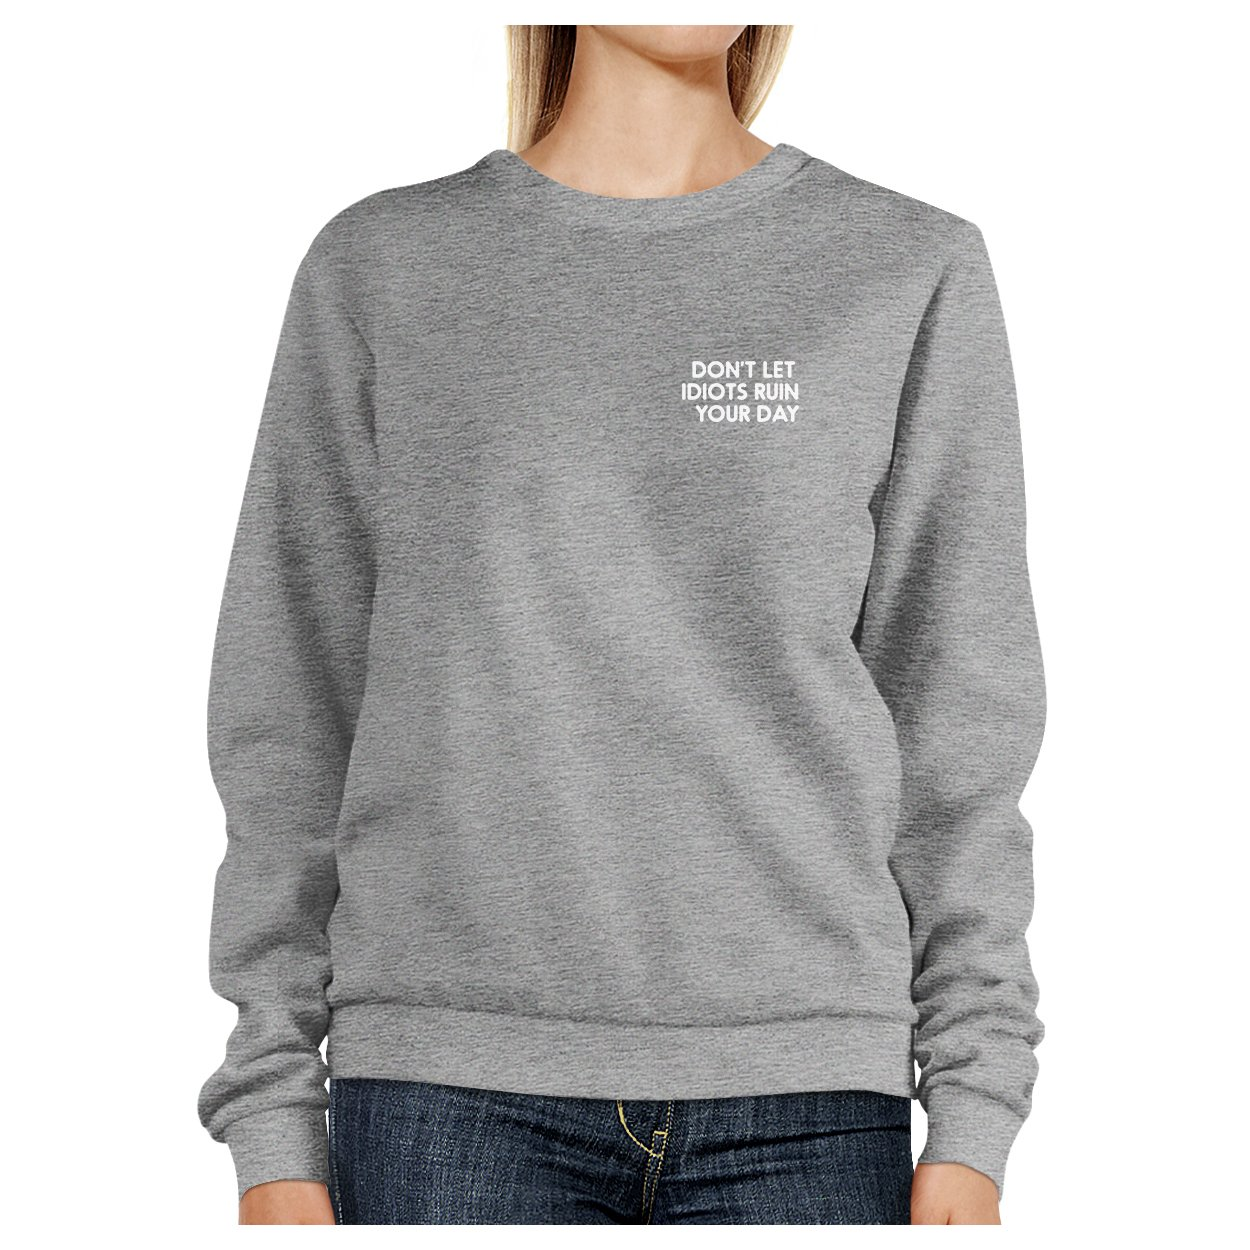 Yay My Girlfriend is Out of Town Men's Funny Sweatshirt Pullover Fleece sweater 365 Printing Inc JSS024